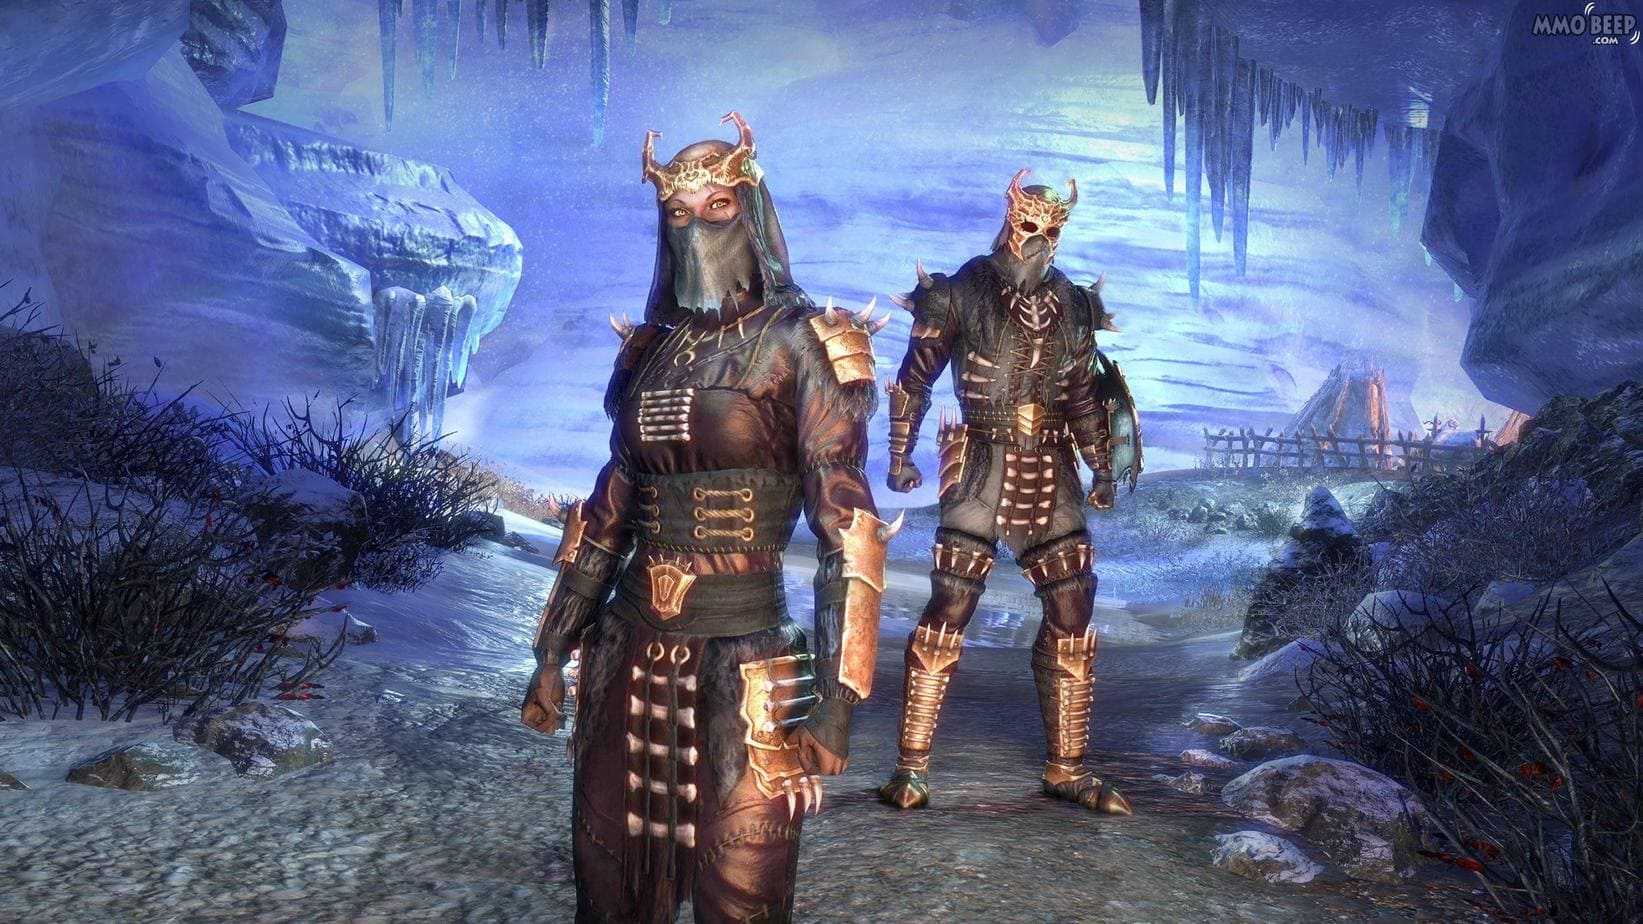 Elder Scrolls Online Update 28 and Markarth New Release Date For Consoles Announced